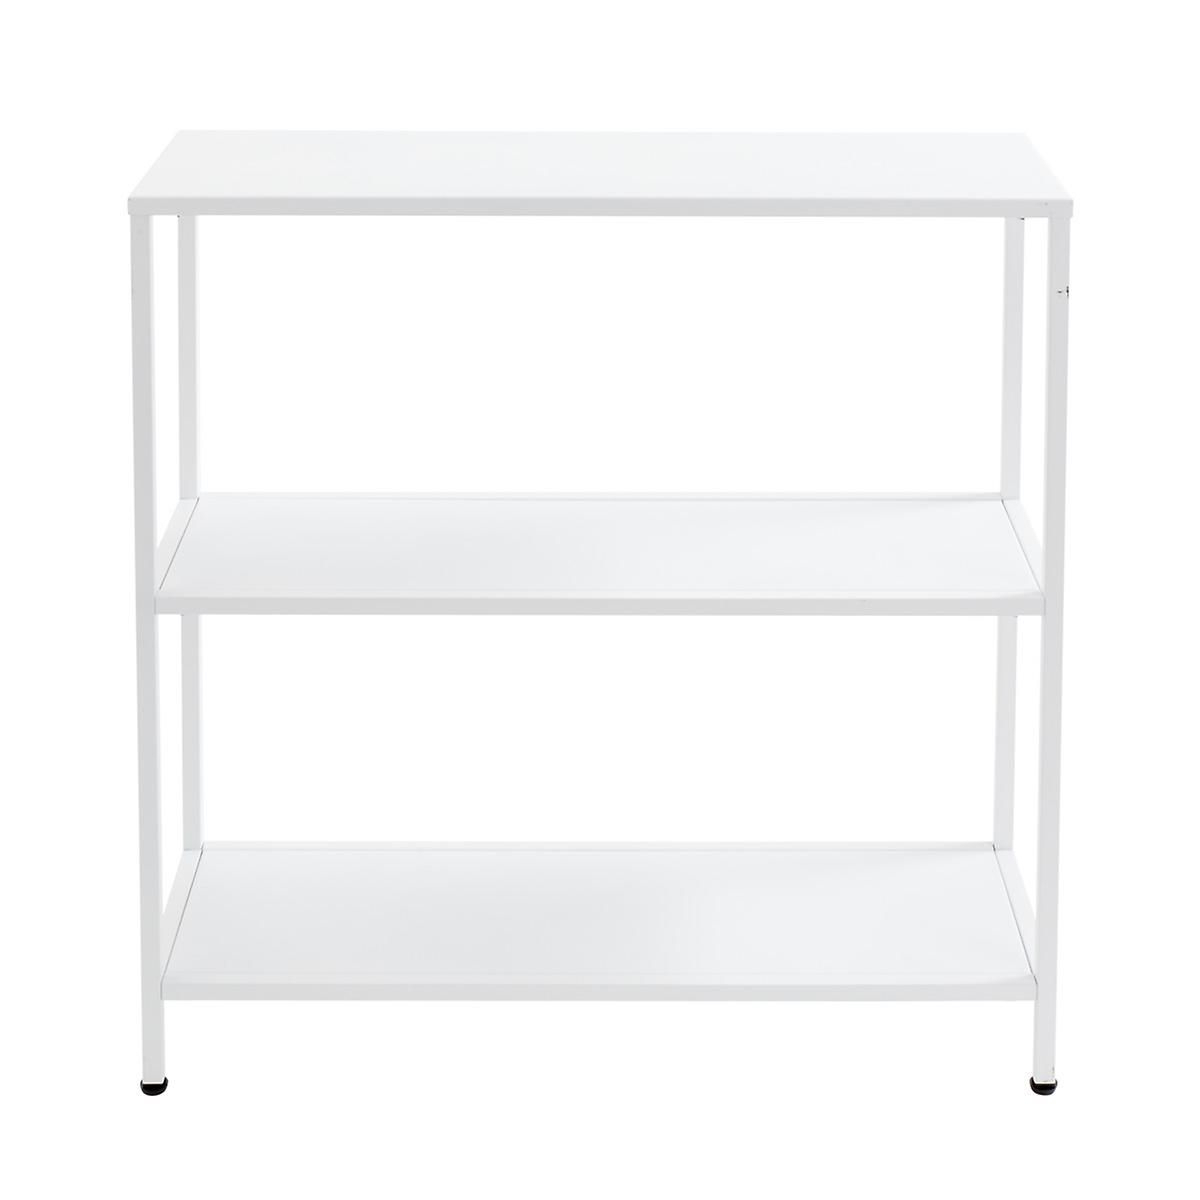 White Essence 3 Tier Console Table | Console Tables, Consoles And In Echelon Console Tables (View 20 of 20)